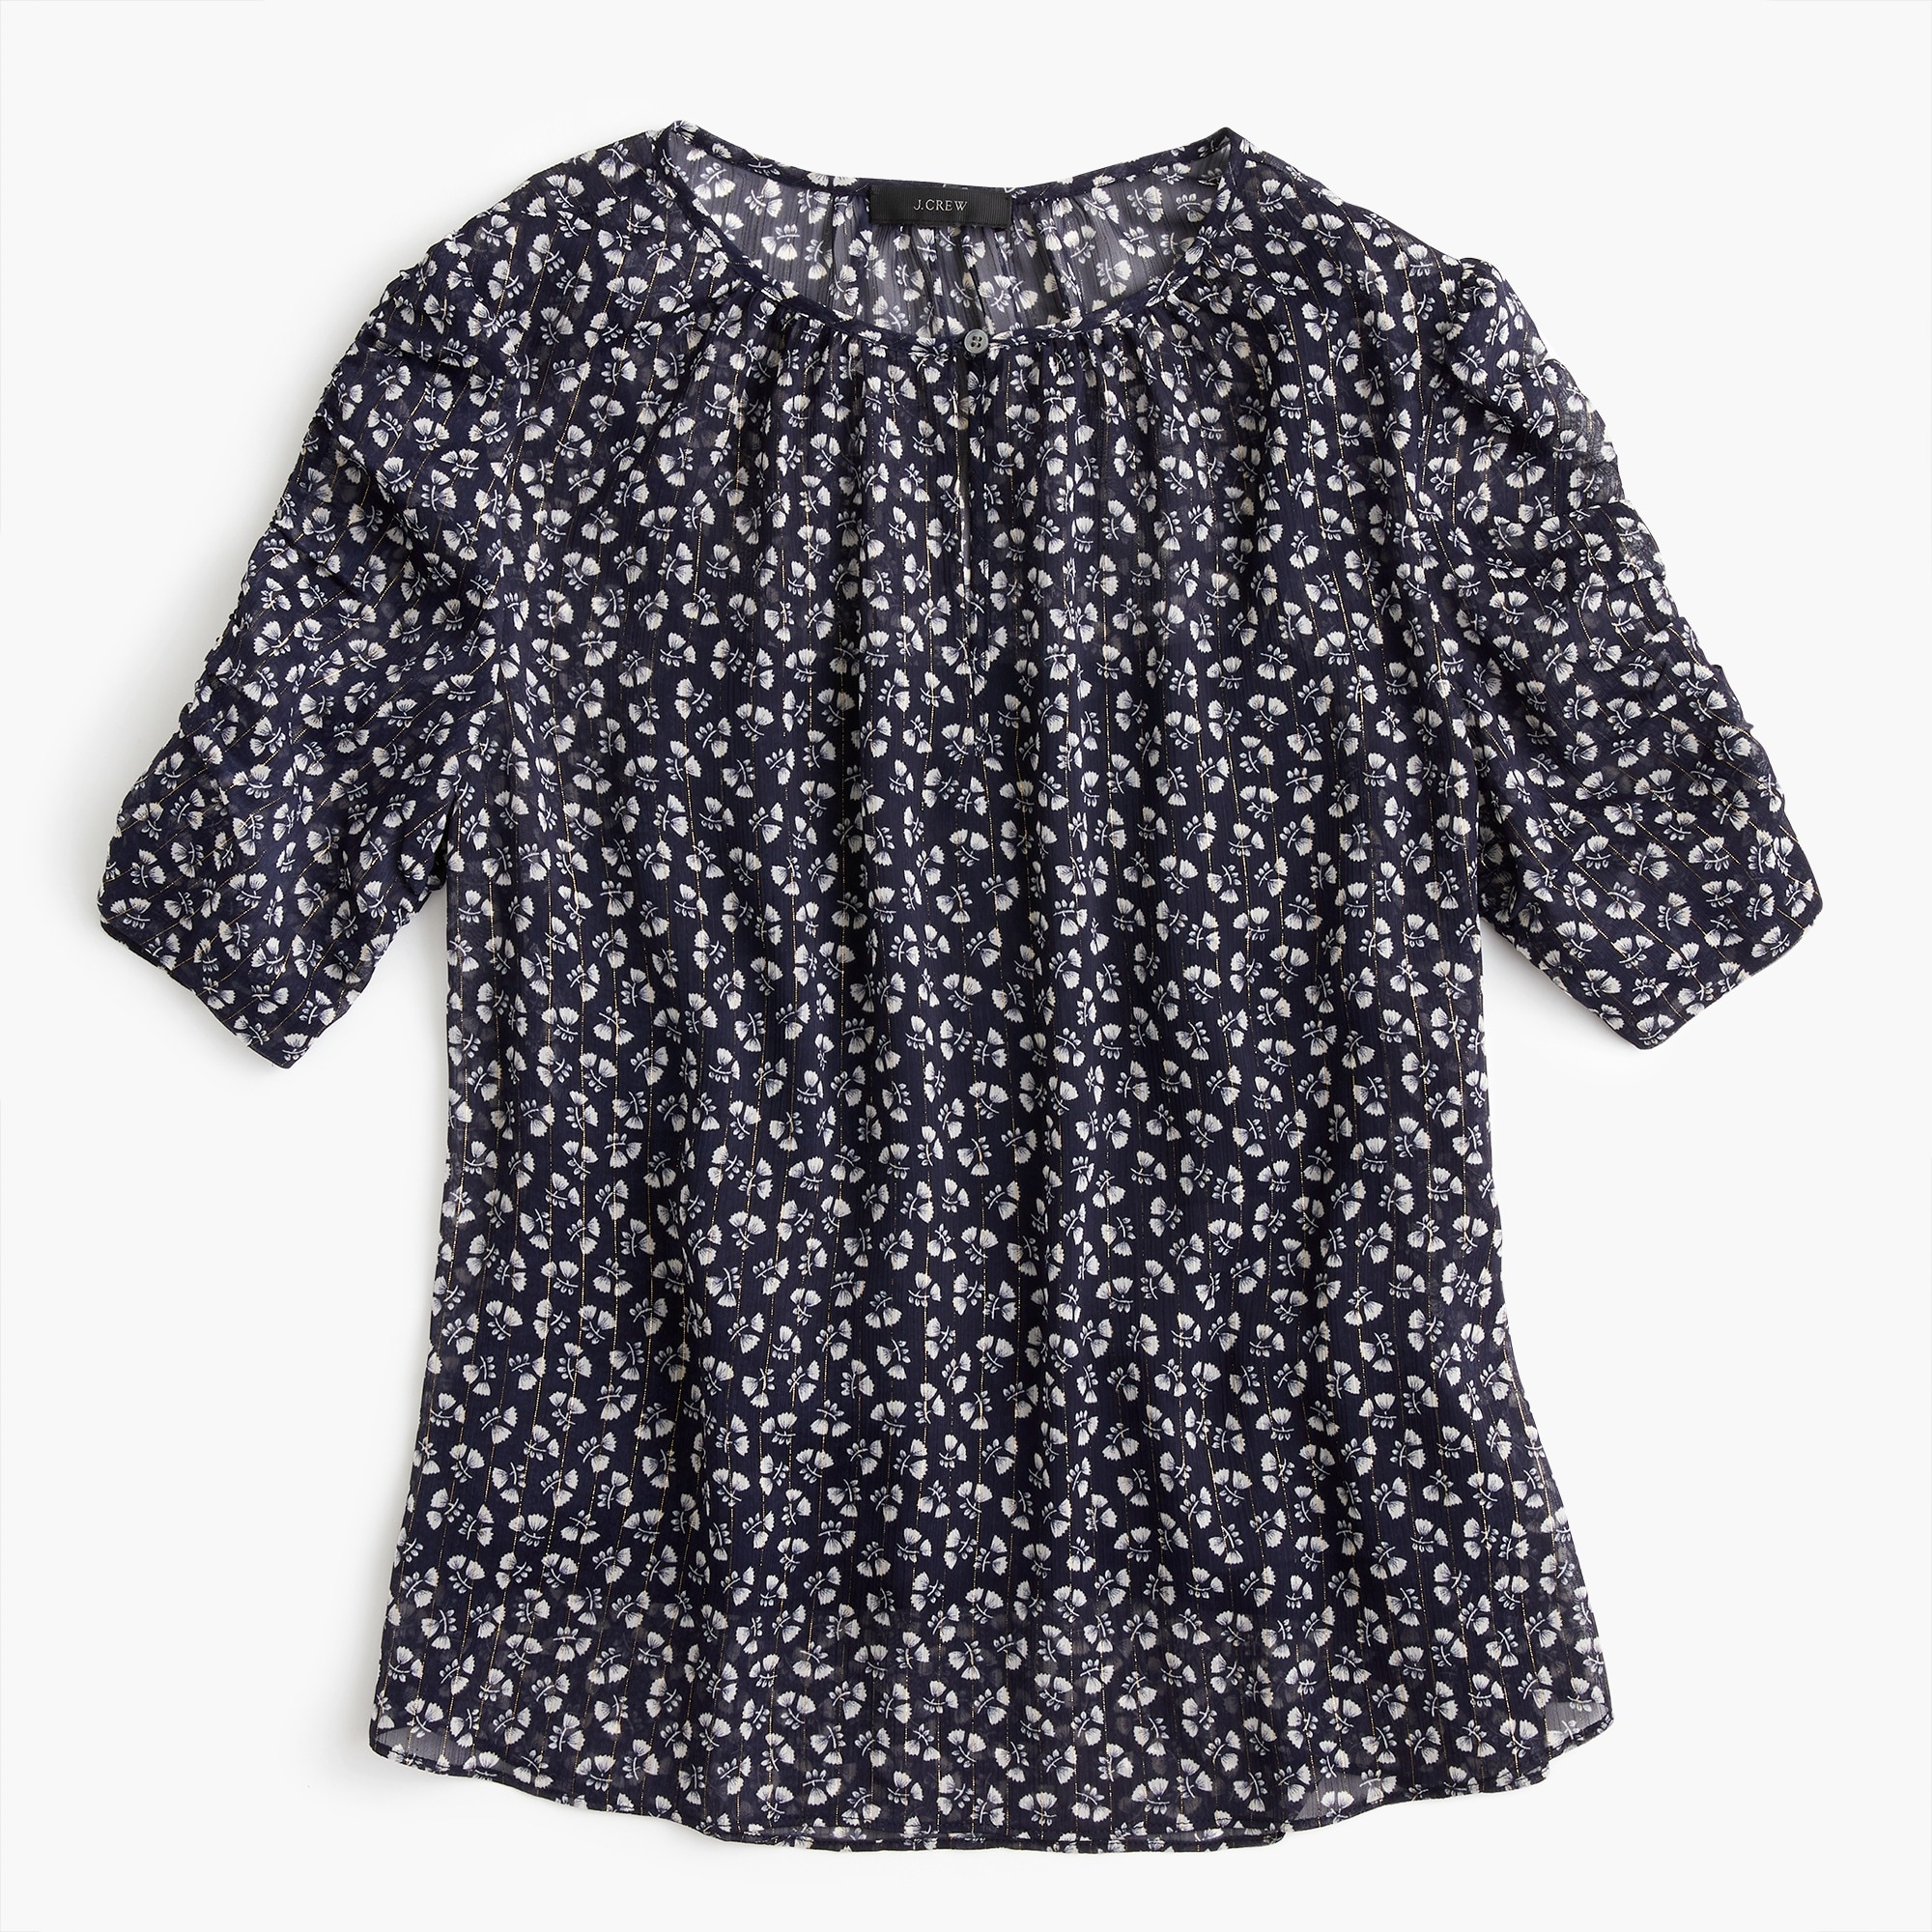 Image 4 for Tall ruched-sleeve top in sparkle floral